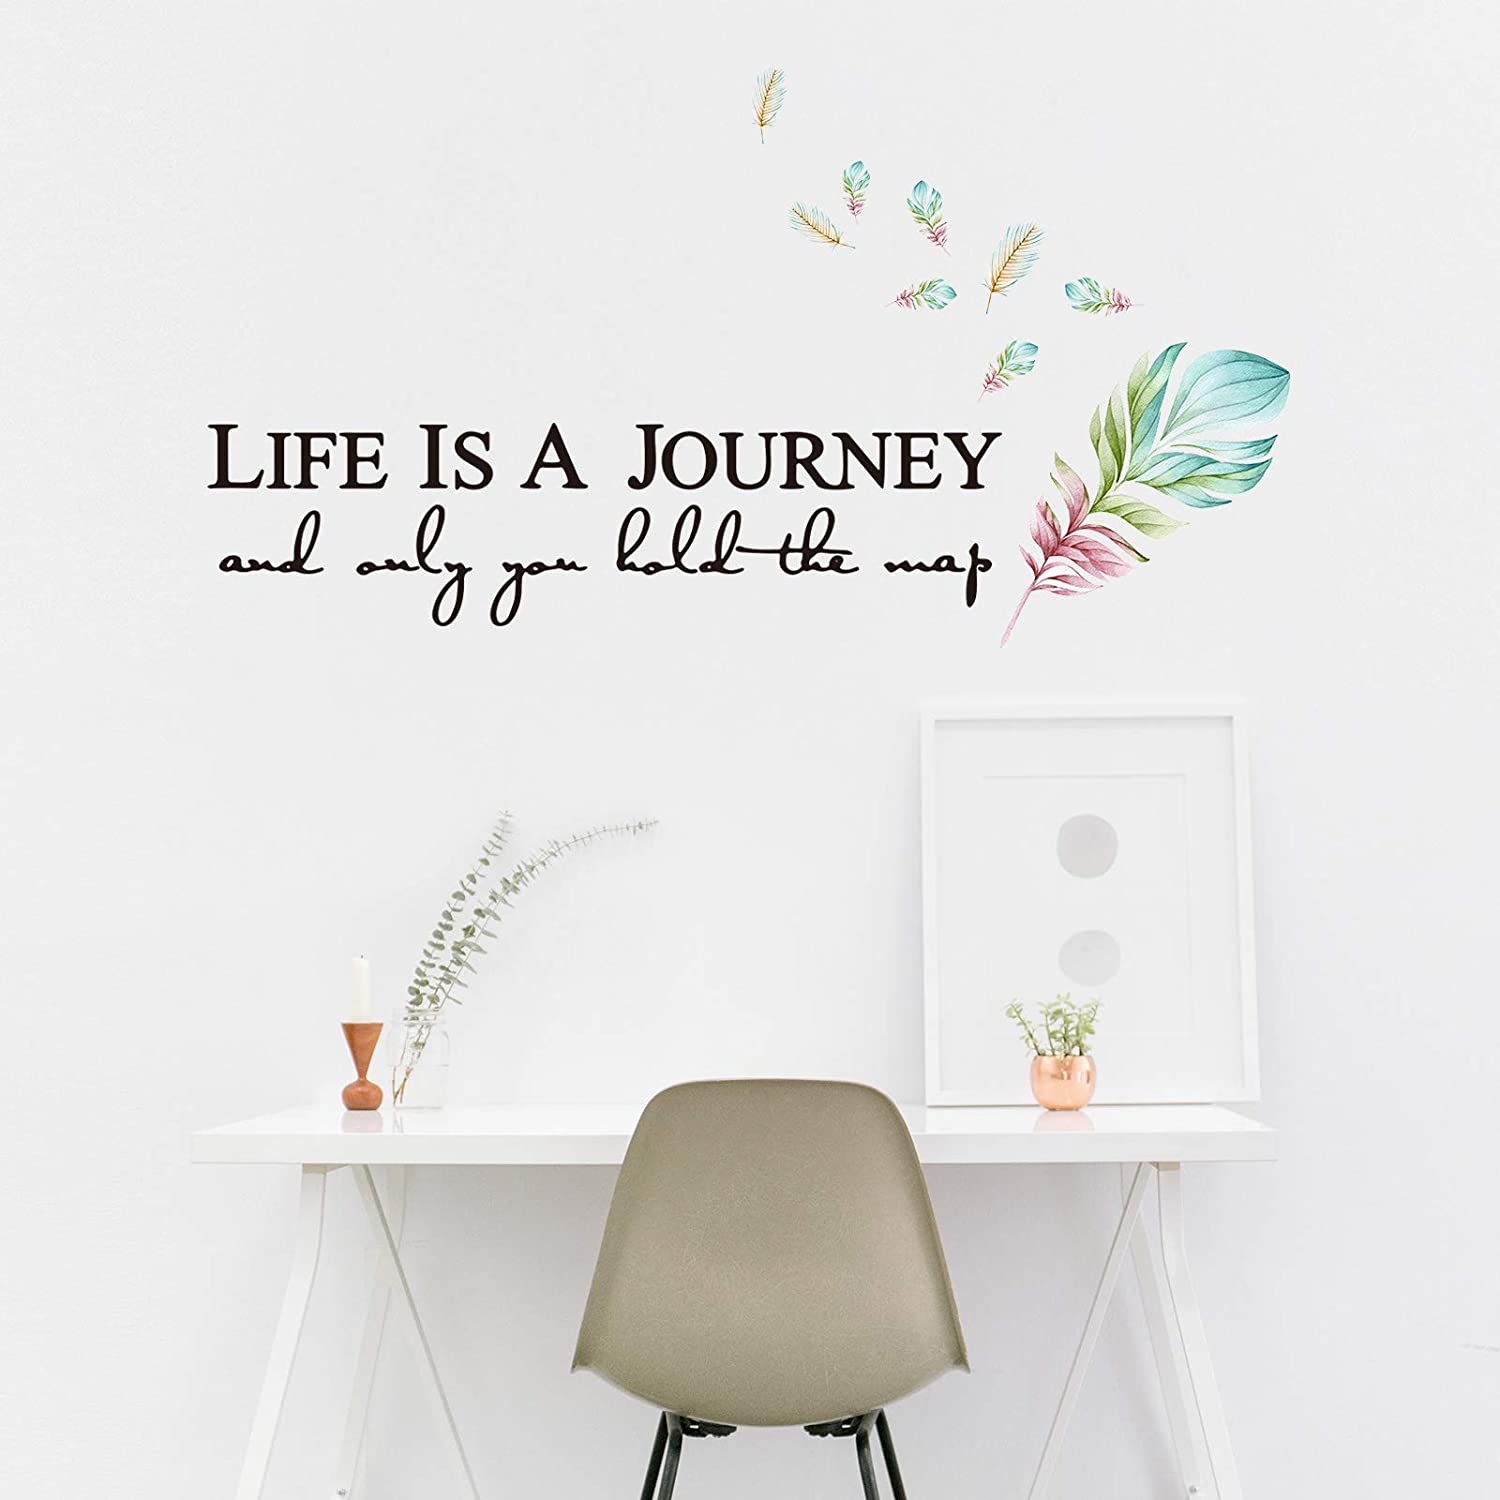 Life is a Journey and Only You Hold The Map Personality and Creative Feather Wall Stickers, DILIBRA Vinyl Verses Bible Prayer Wall Decor,Inspirational Quote Stickers